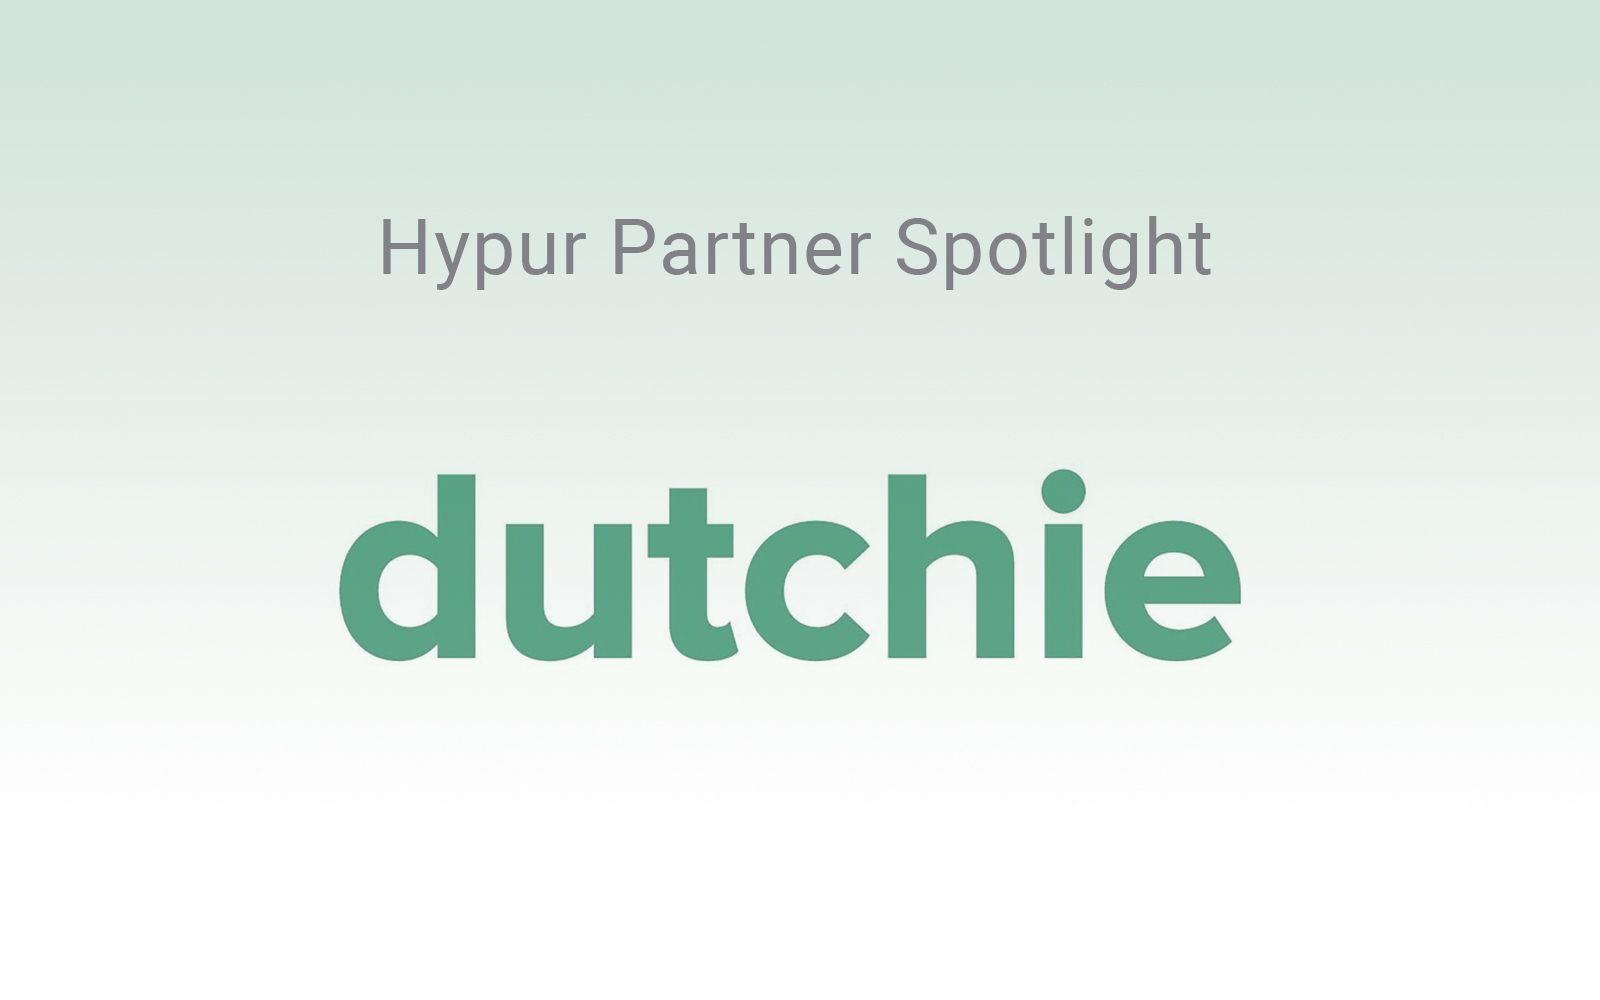 Hypur and dutchie